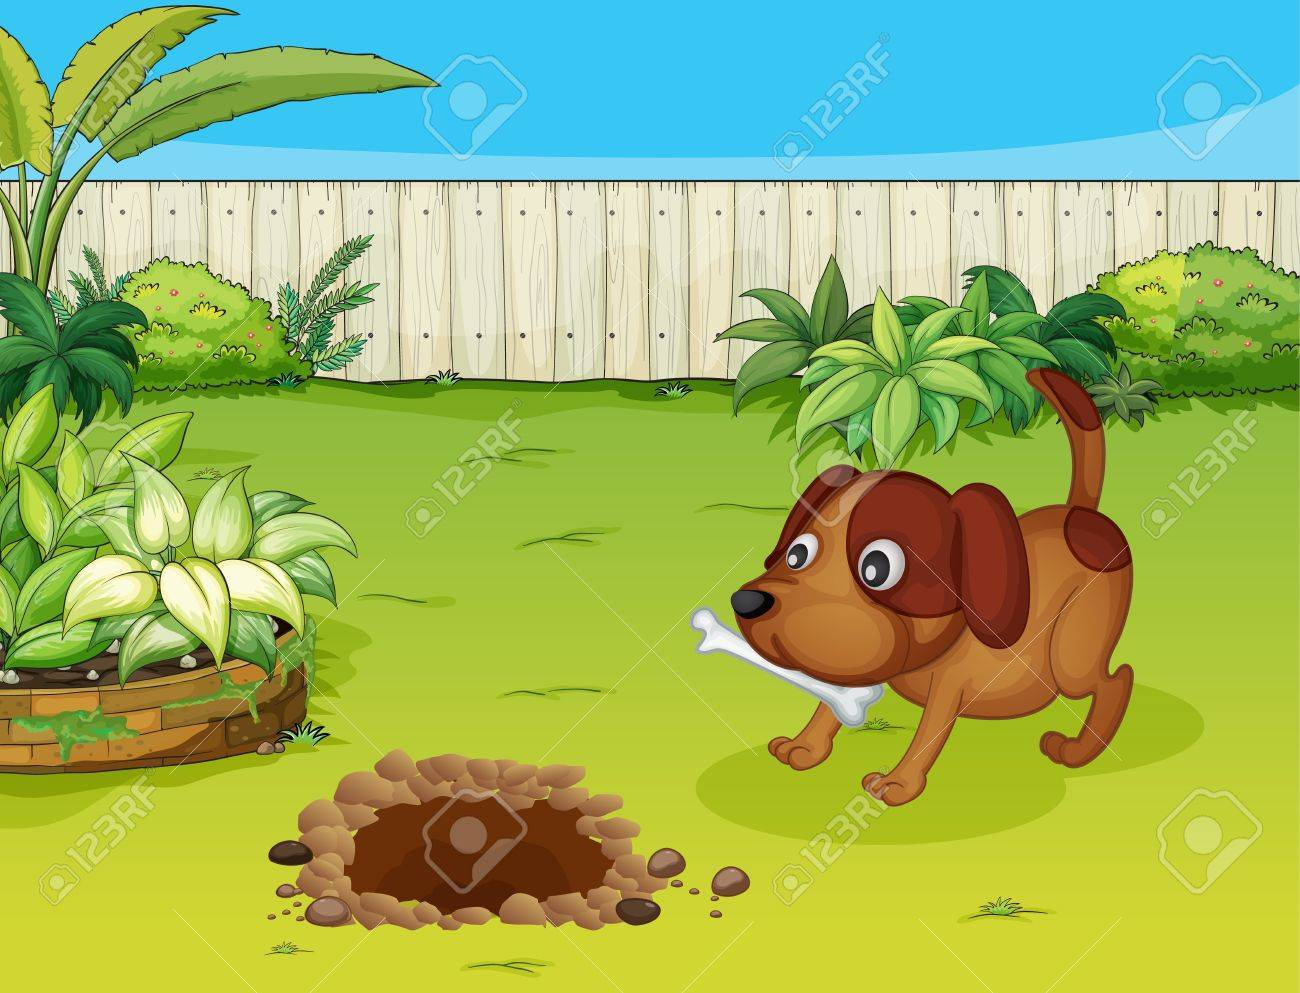 Illustration of a dog with a bone in the garden Stock Vector - 17024805